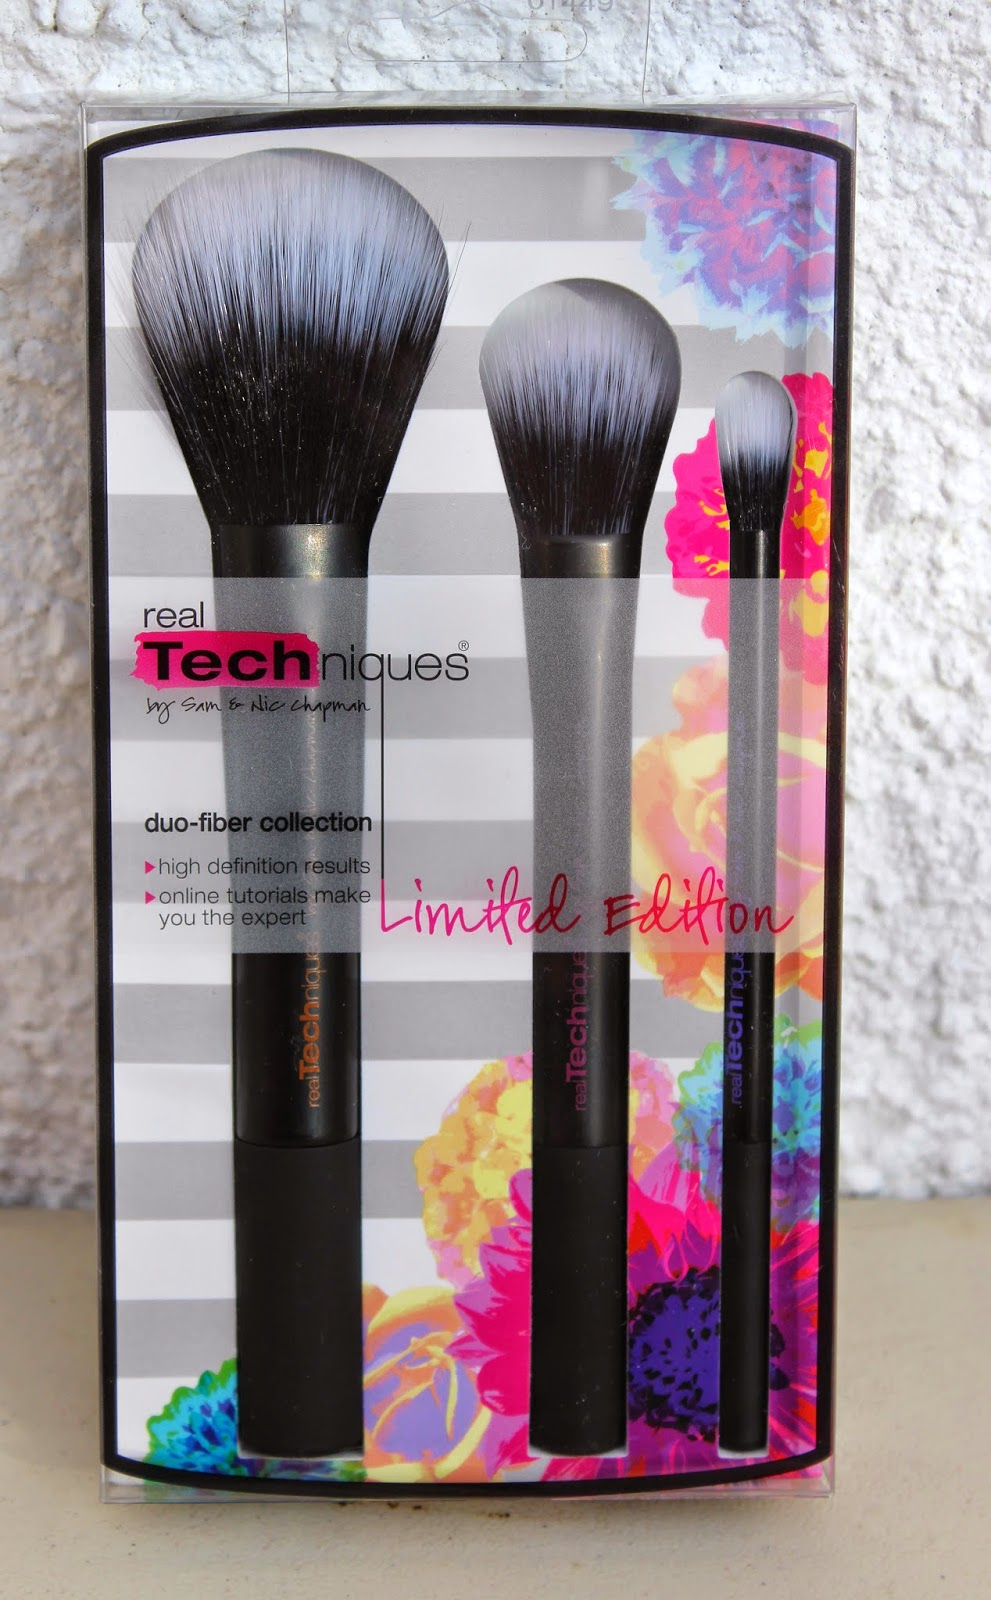 These Brushes Are Super Soft Made With Synthetic Bristles And They Do Not Shed When Applying